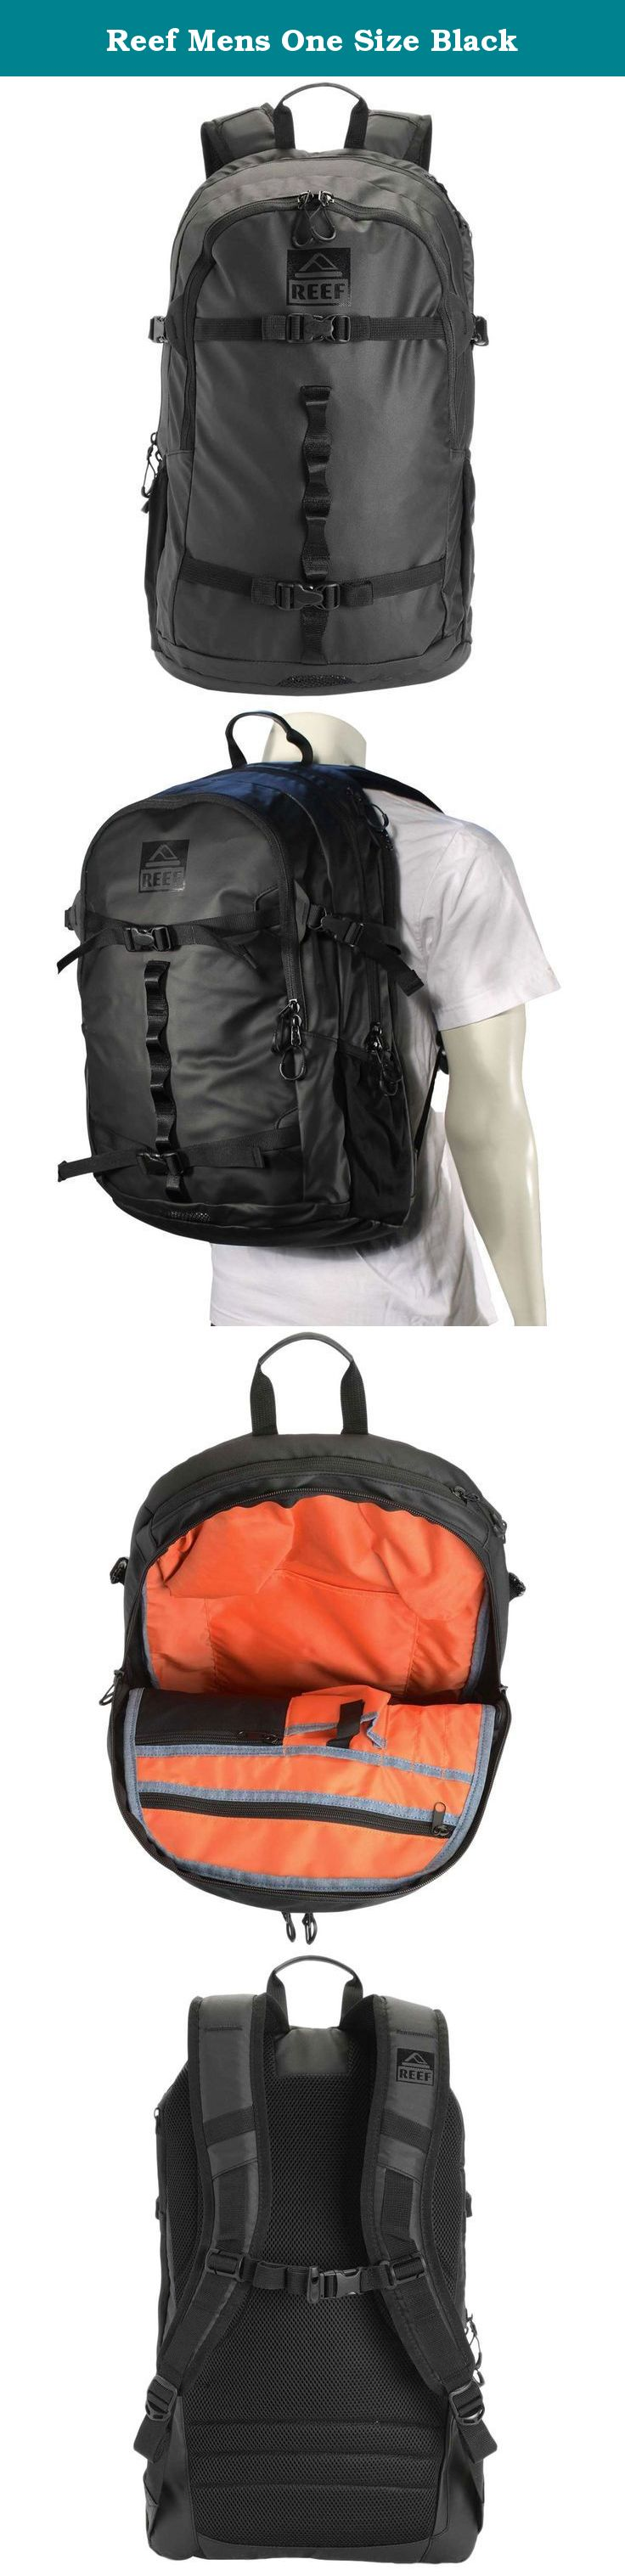 Reef Mens One Size Black Reef Diamond Tail Iii Pack Reef Shelter Supply Surf Backpack Pop Color Lining With Chambray Bin Surf Backpack Backpacks Laptop Pocket